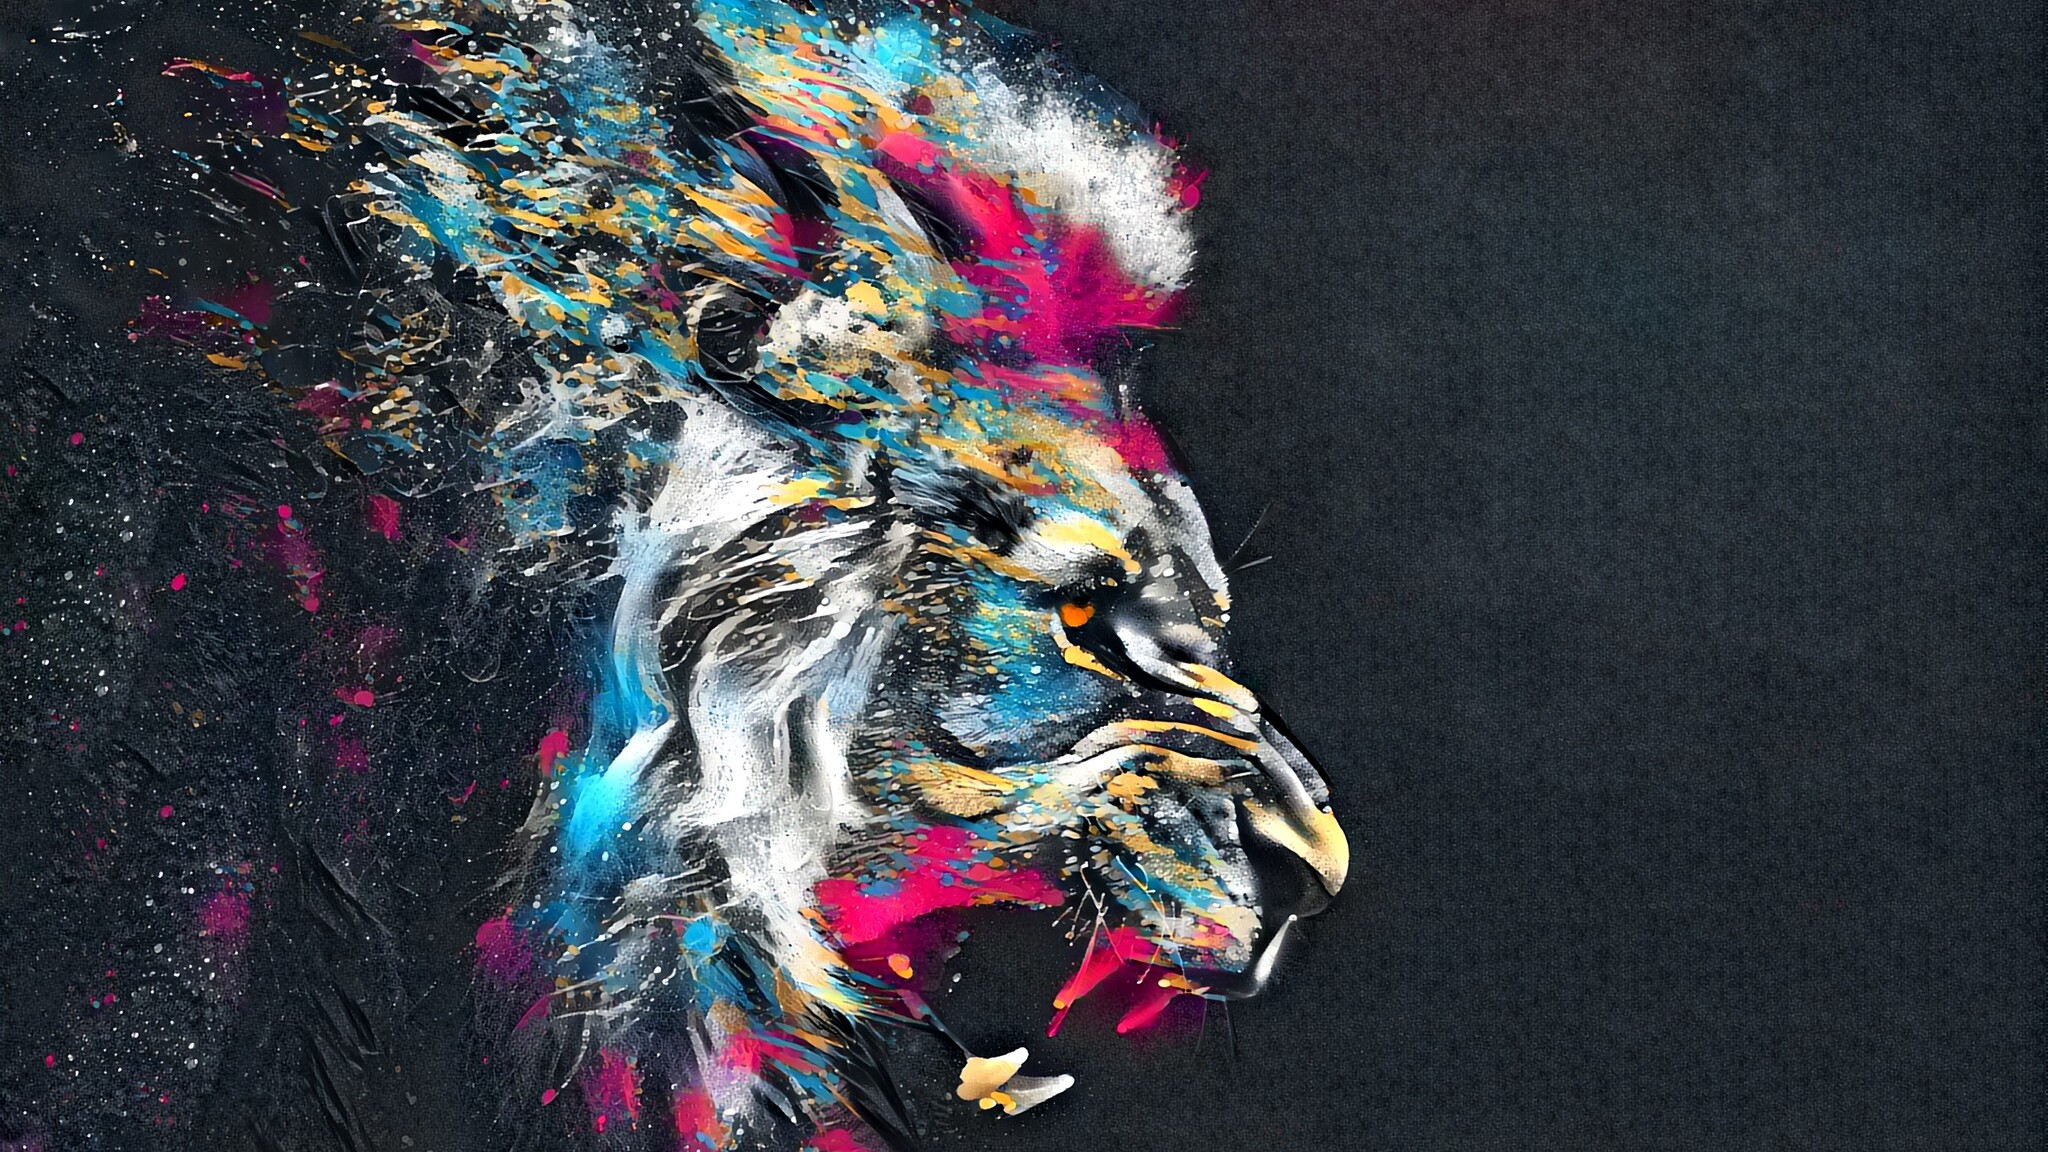 2048x1152 Abstract Artistic Colorful Lion 2048x1152 ...